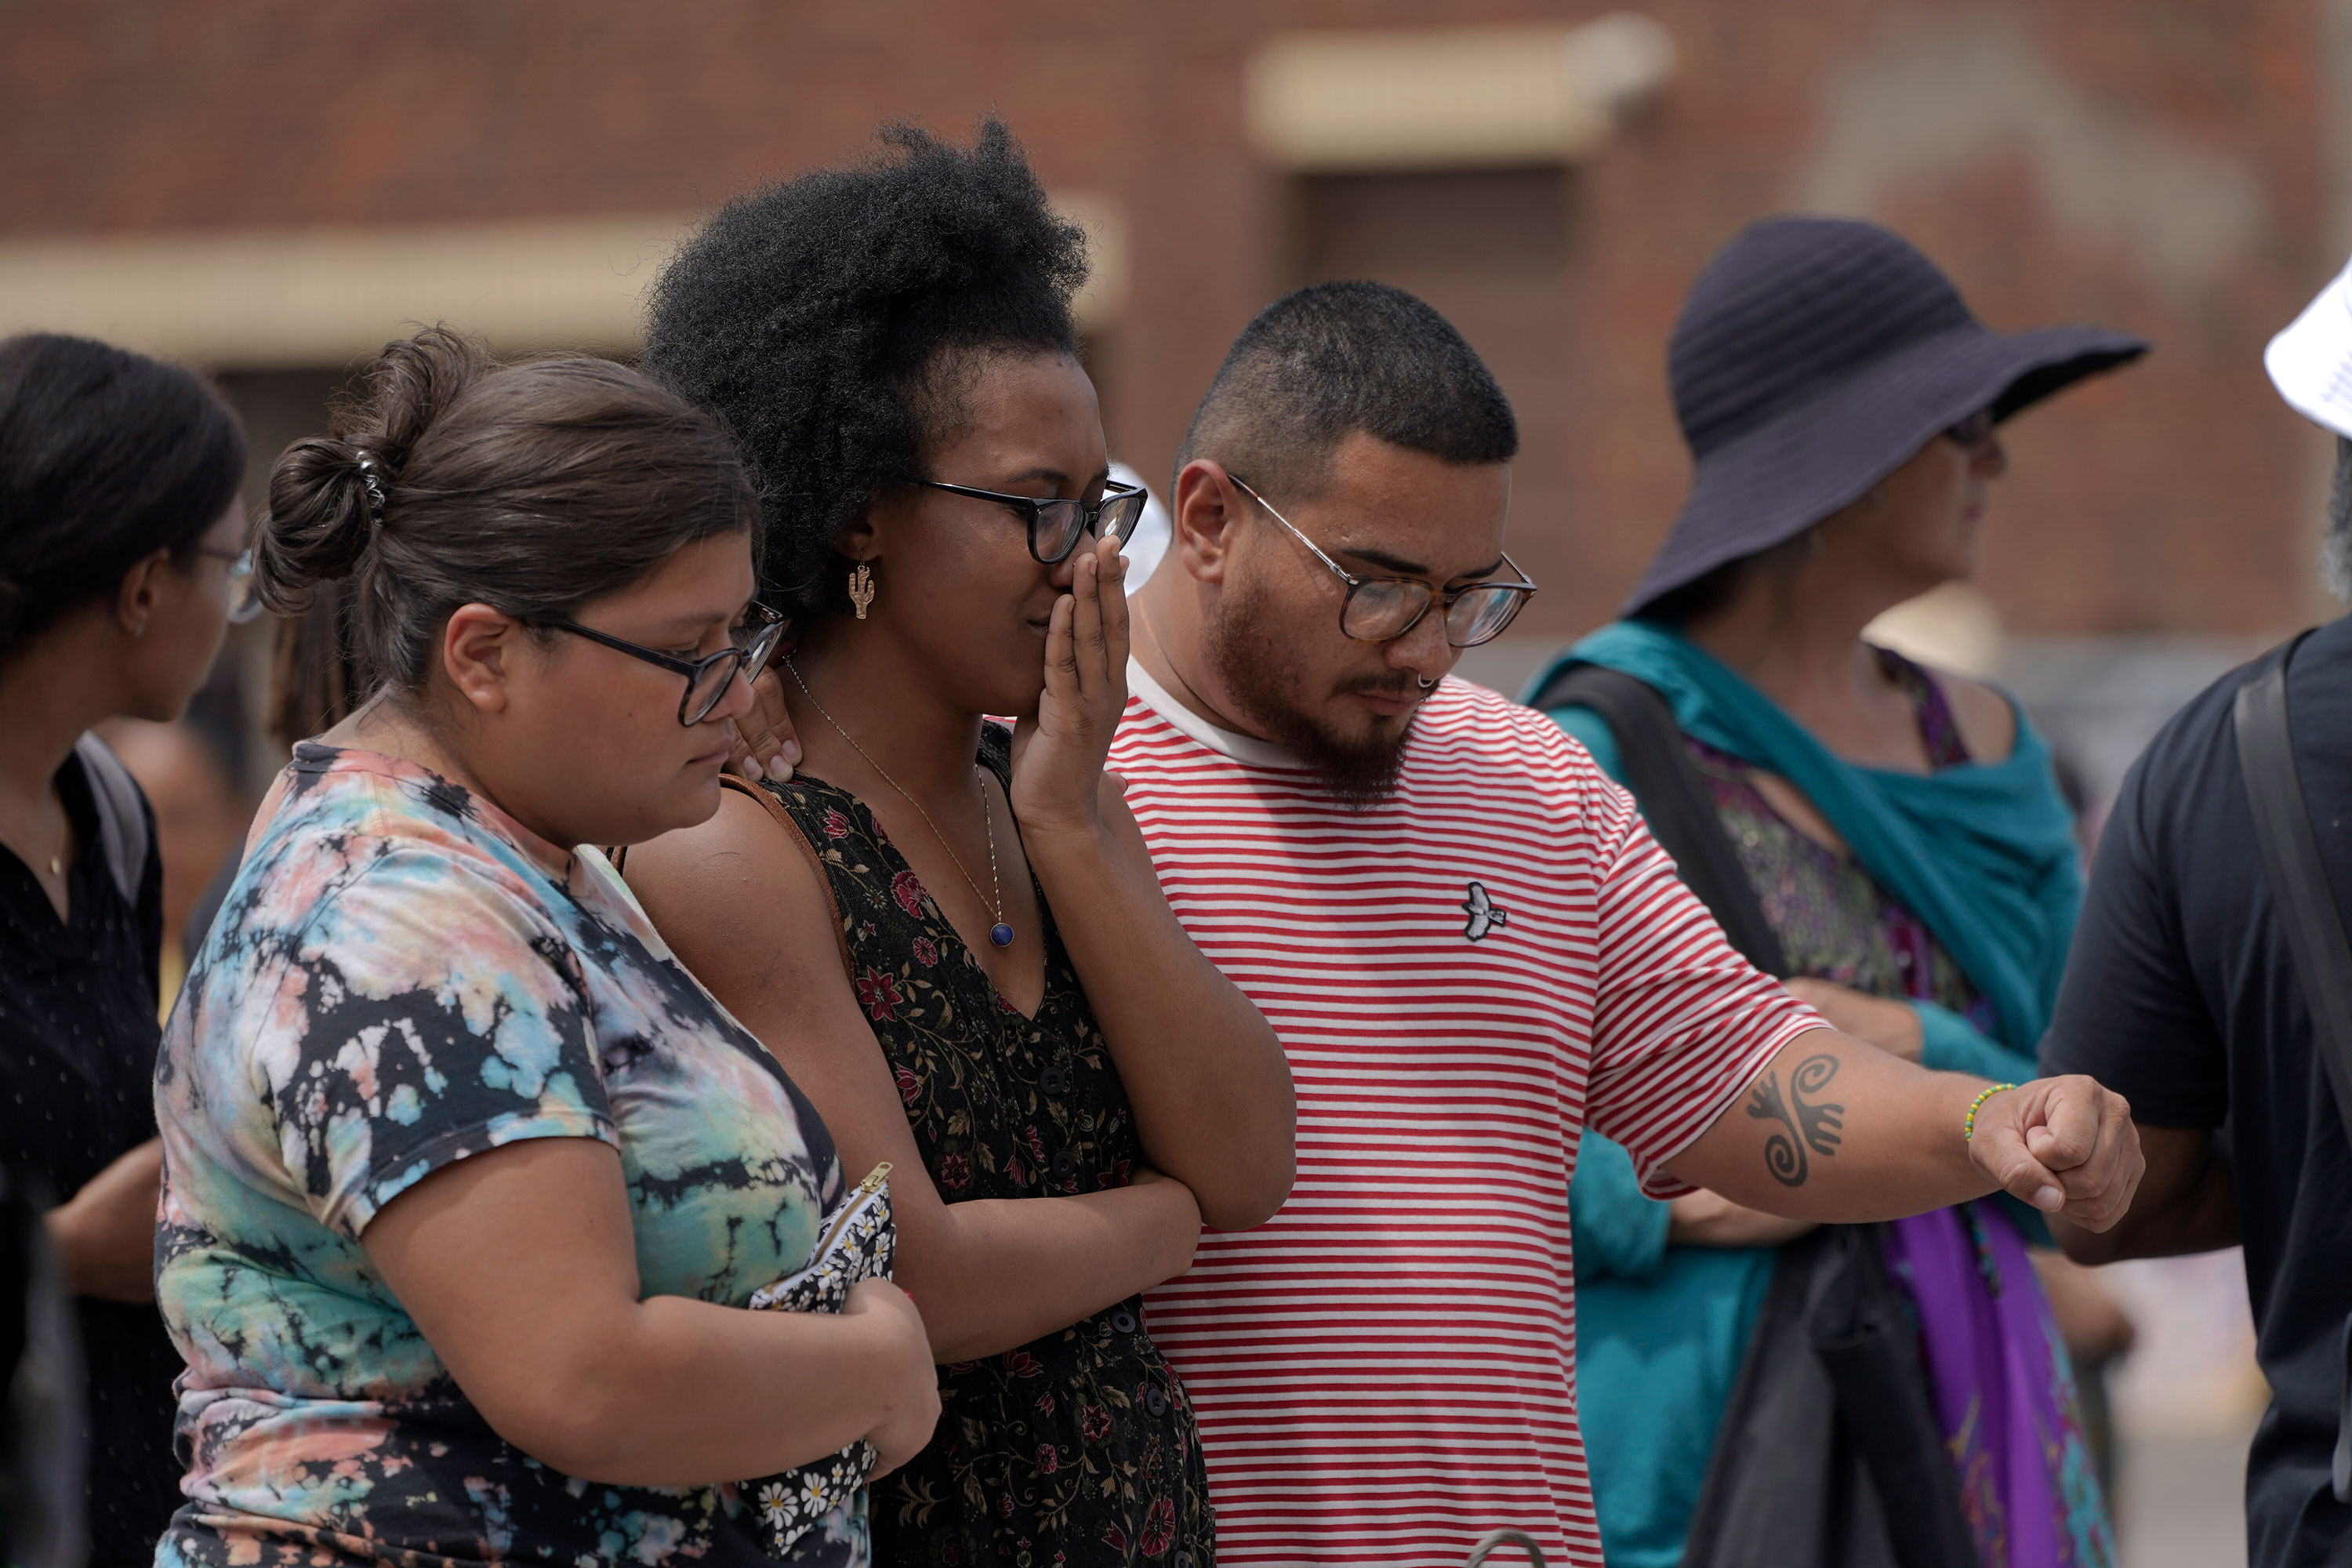 Supporters gather at George Floyd Square, the location where Floyd was killed, on June 25.